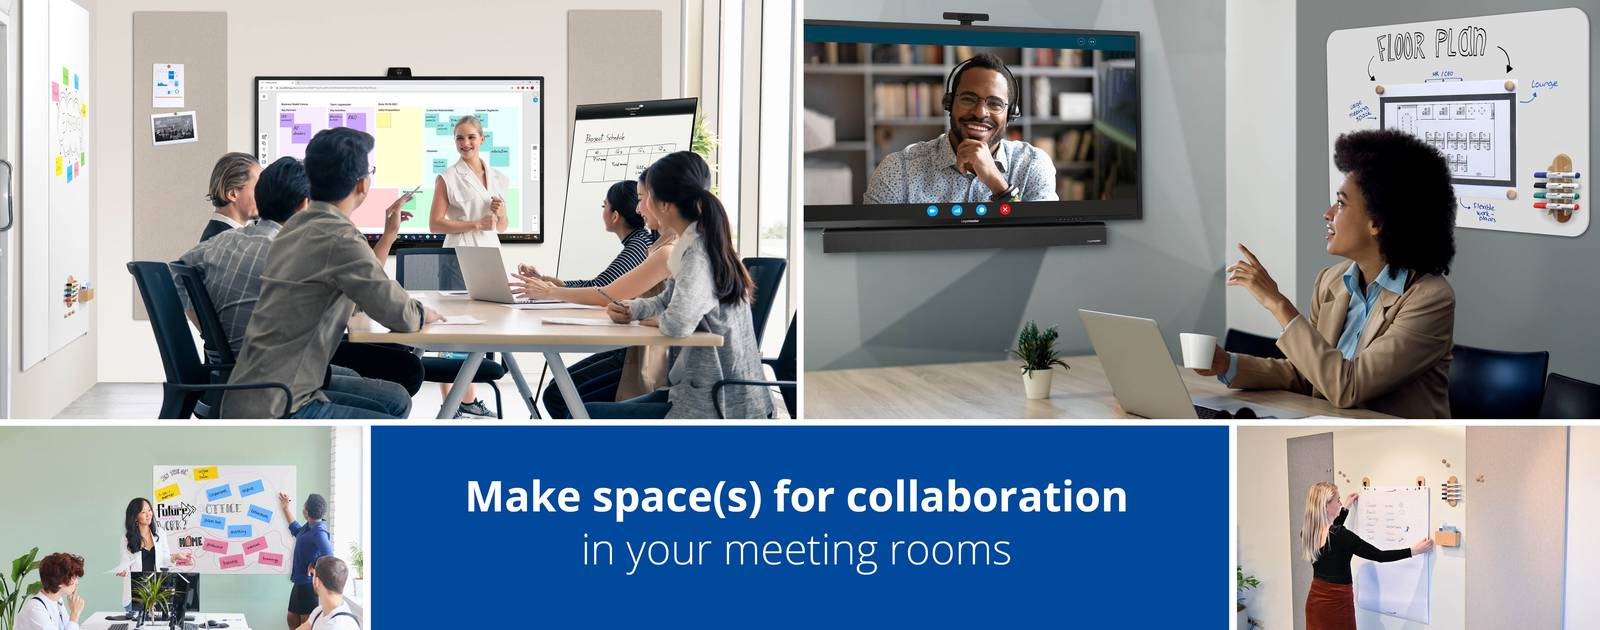 Make space(s) for collaboration